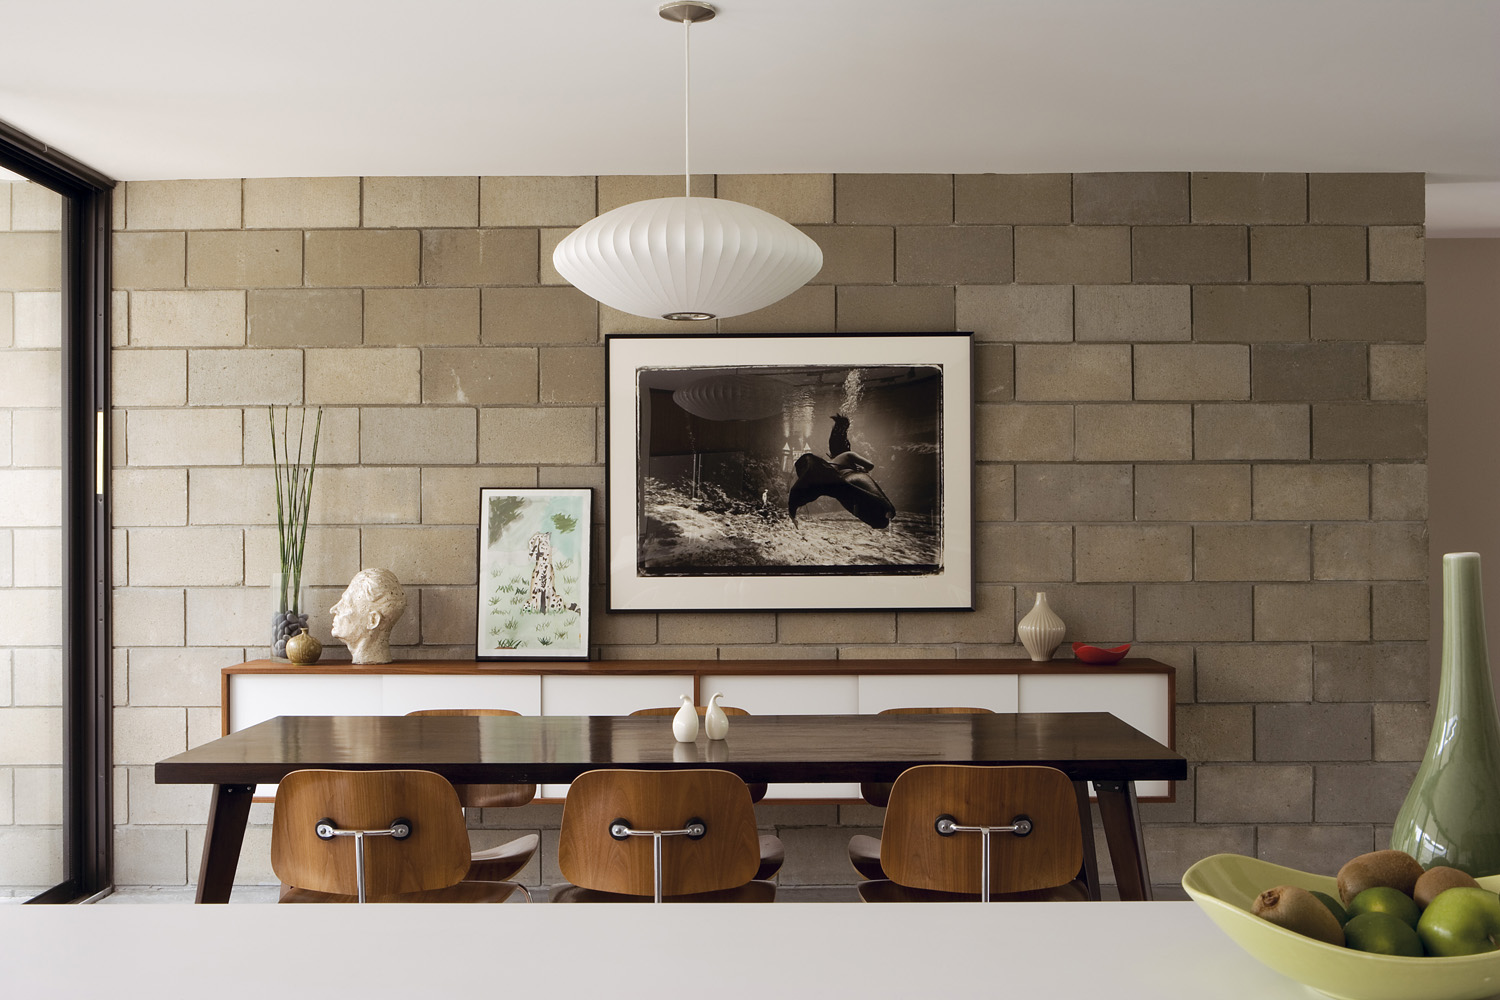 Fifty shades of grey: The bare brick feature walls throughout the house bring the mid-century look bang up to date